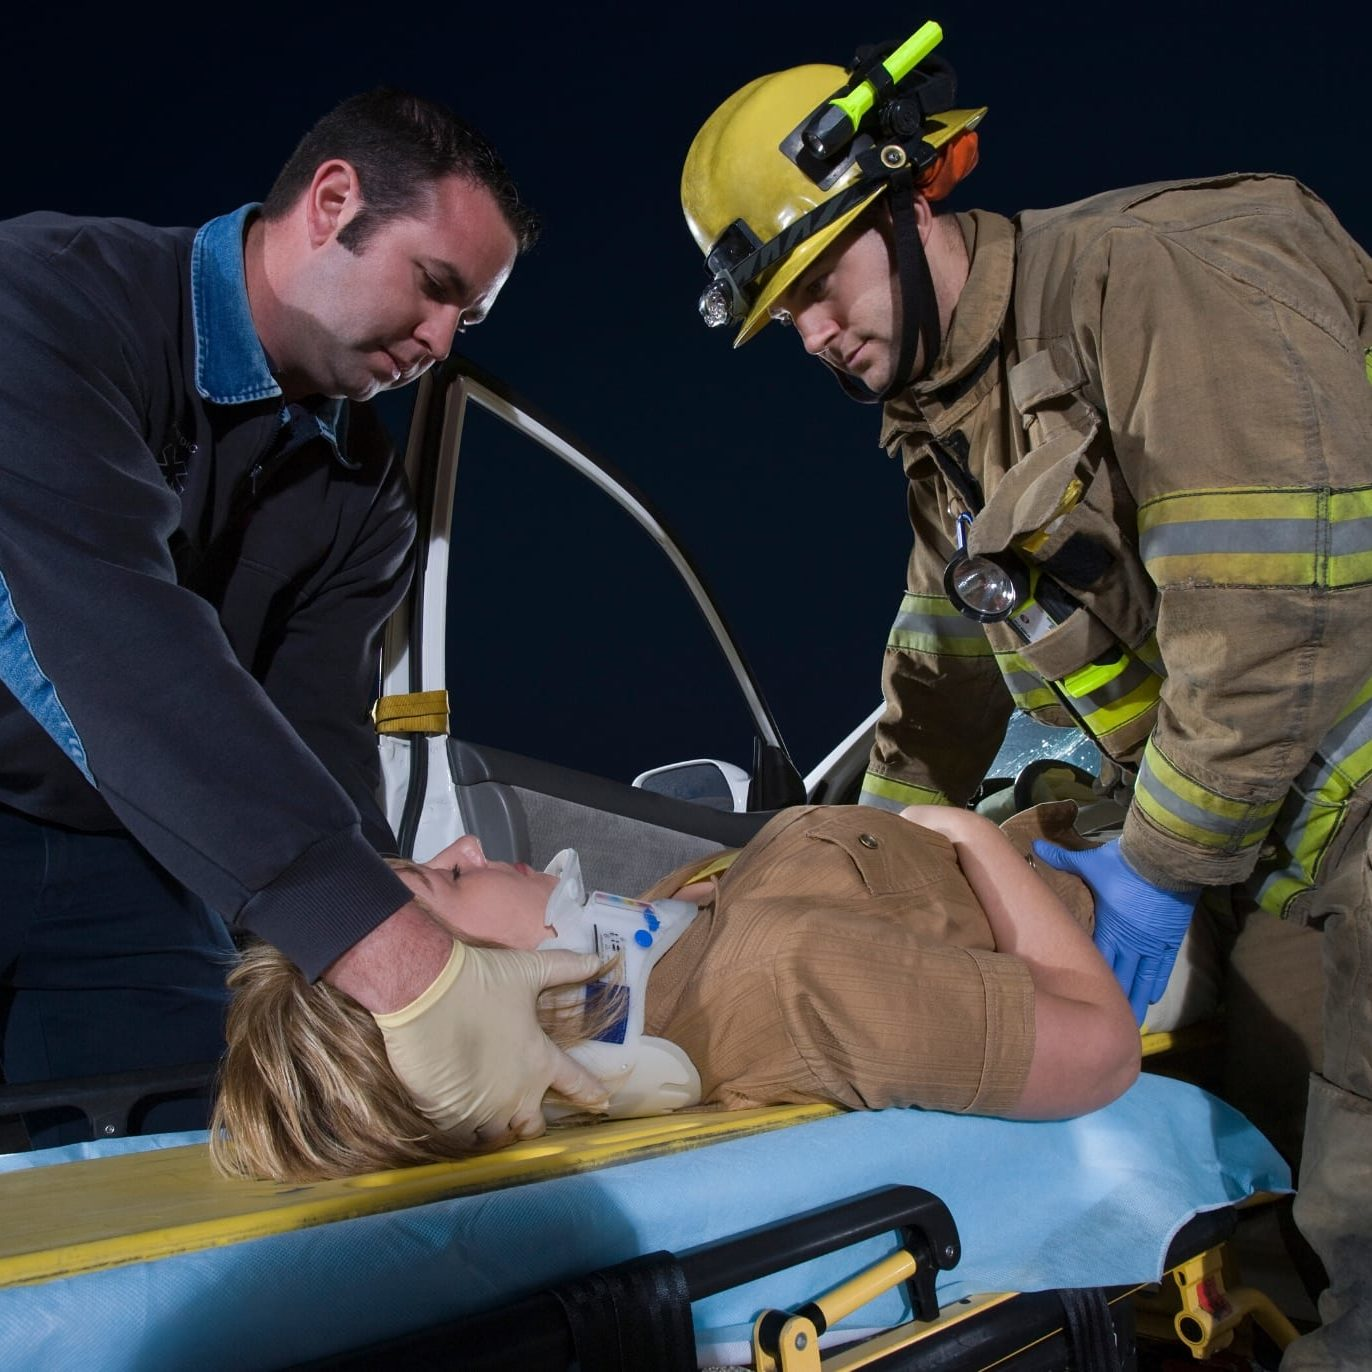 Car accident, auto accident, EMT, firefighter workers compensation personal injury